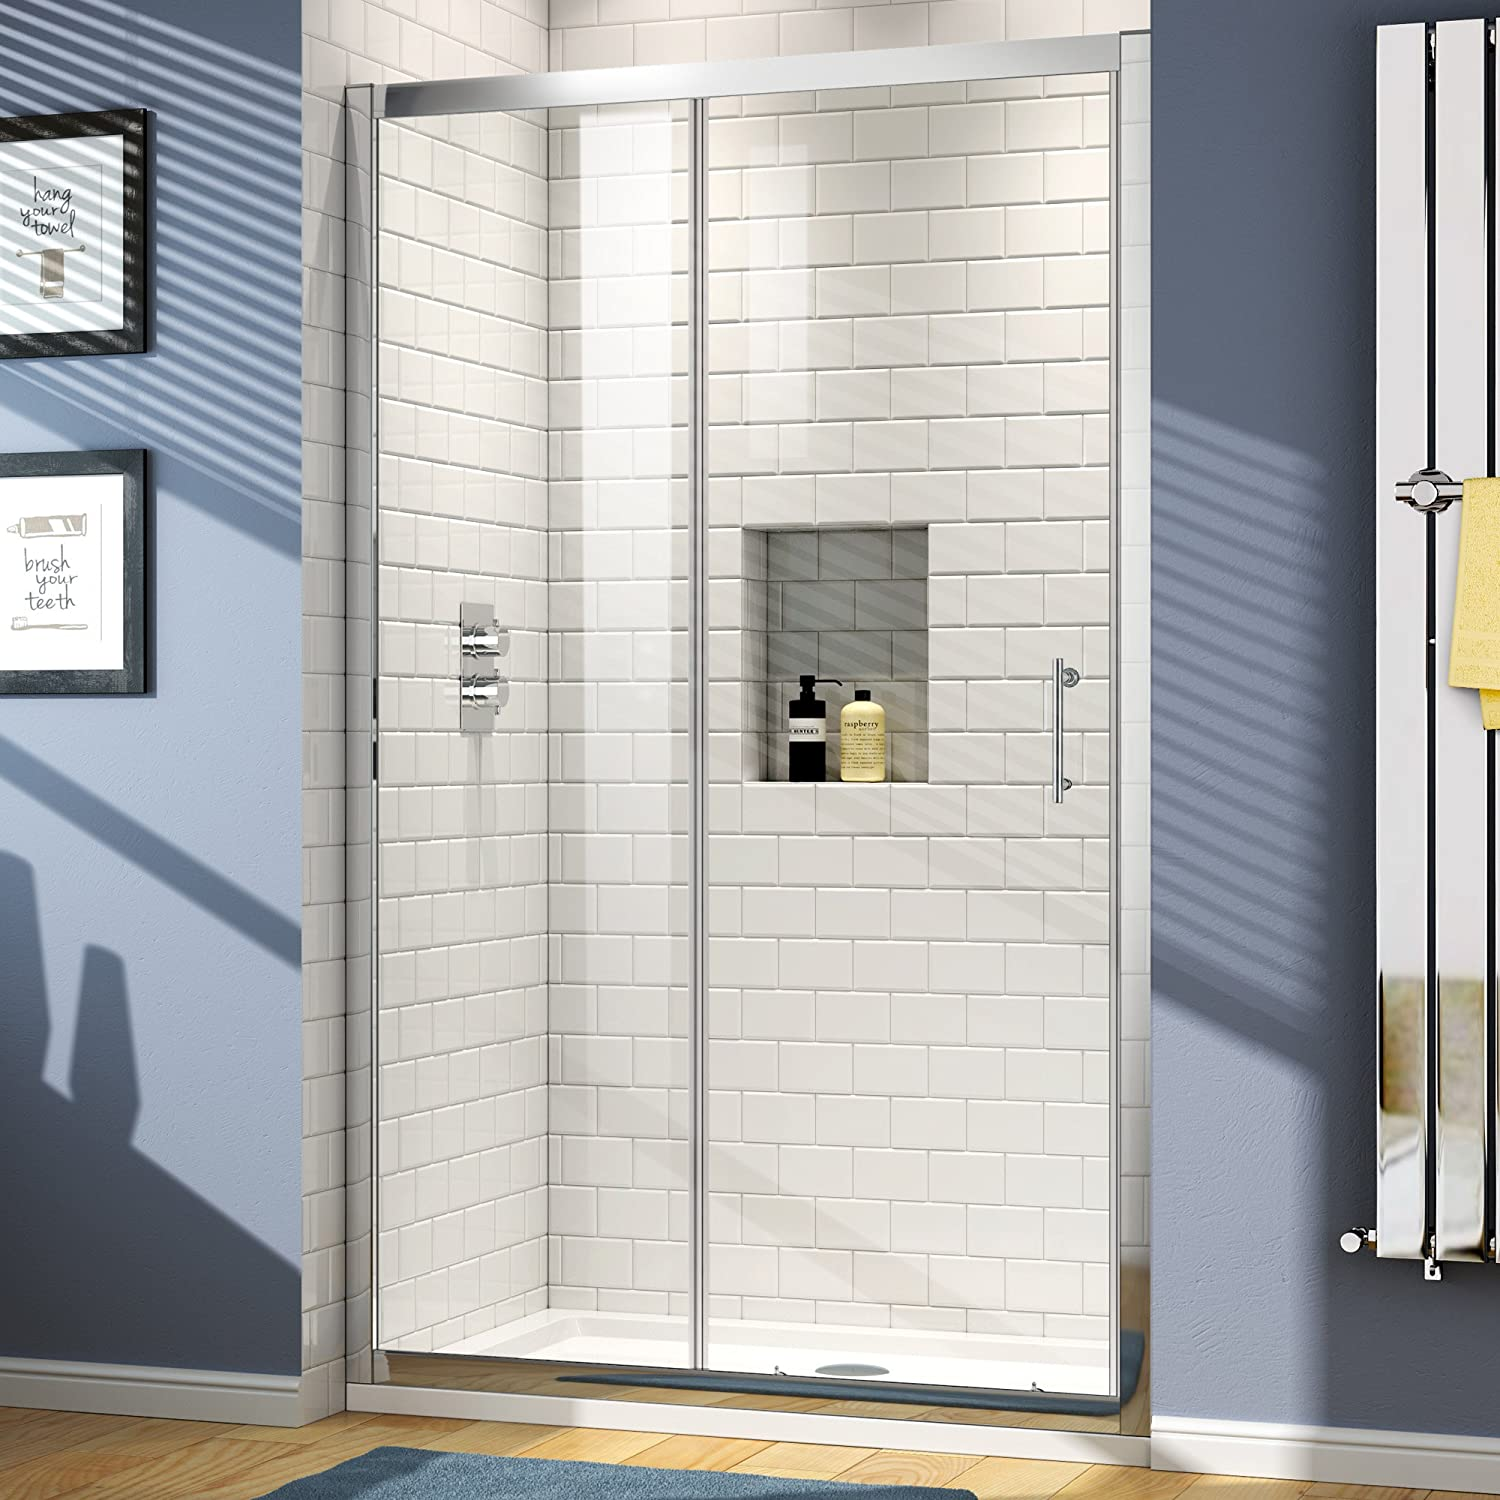 1400 x 800 mm Sliding Glass Shower Door Alcove Enclosure Cubicle ...